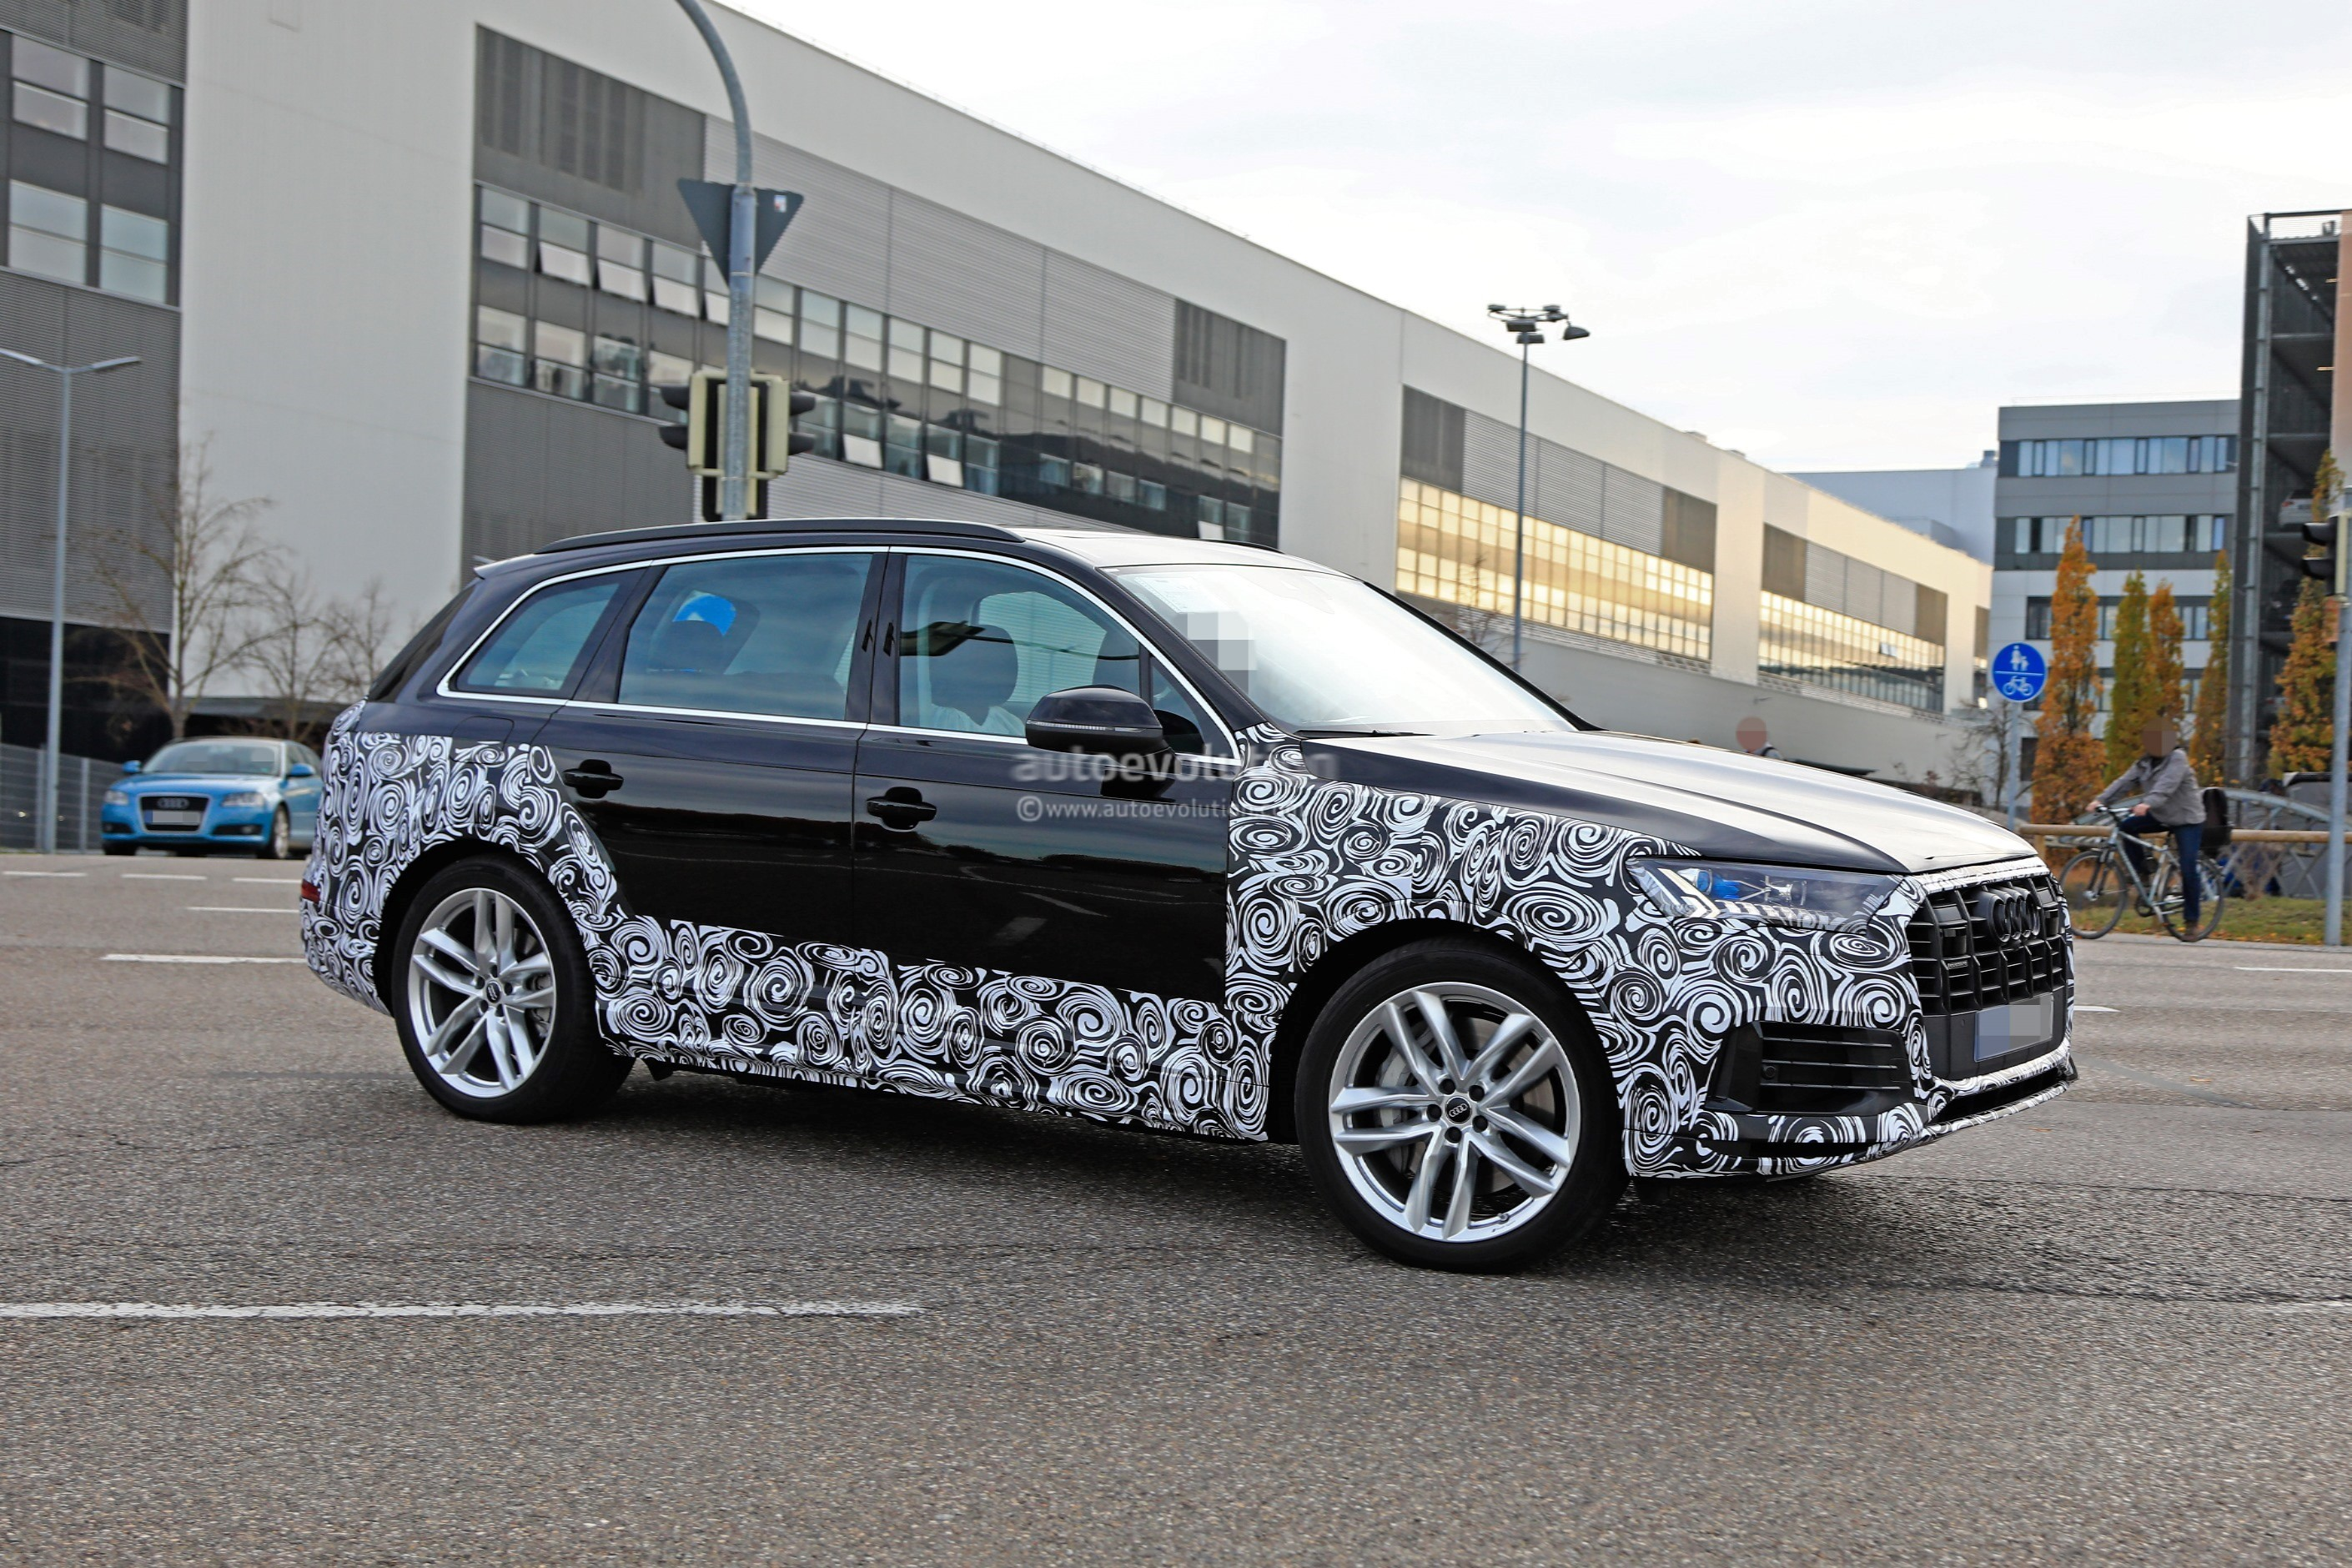 Audi Q7 2019 Facelift >> 2020 Audi Q7 Facelift Spied, Features Dual-Screen Infotainment System From Q8 - autoevolution